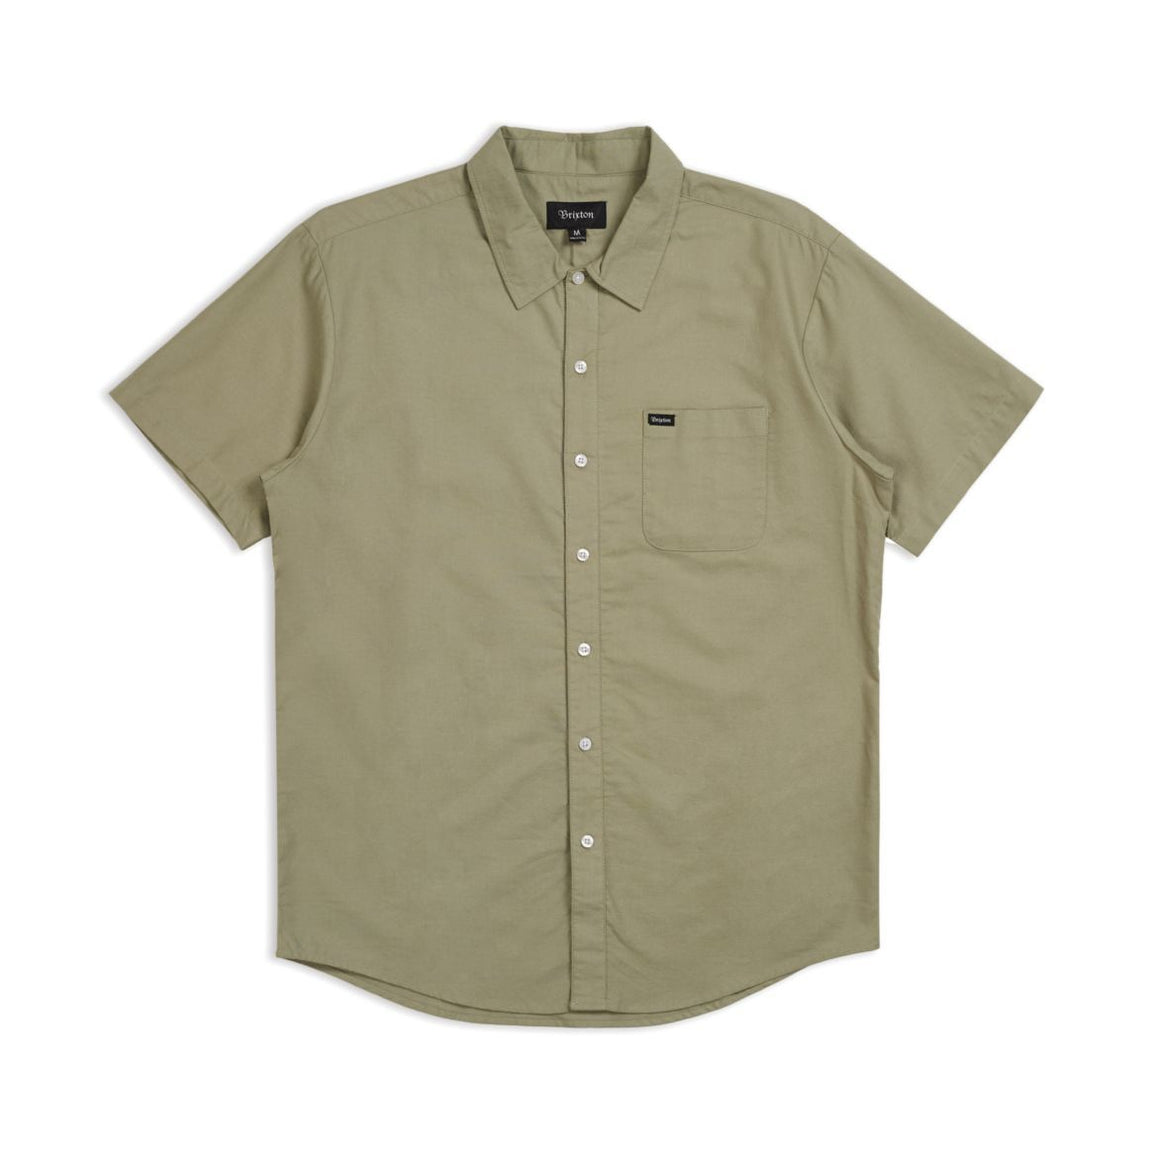 CHARTER OXFORD S/S WOVEN - Sage